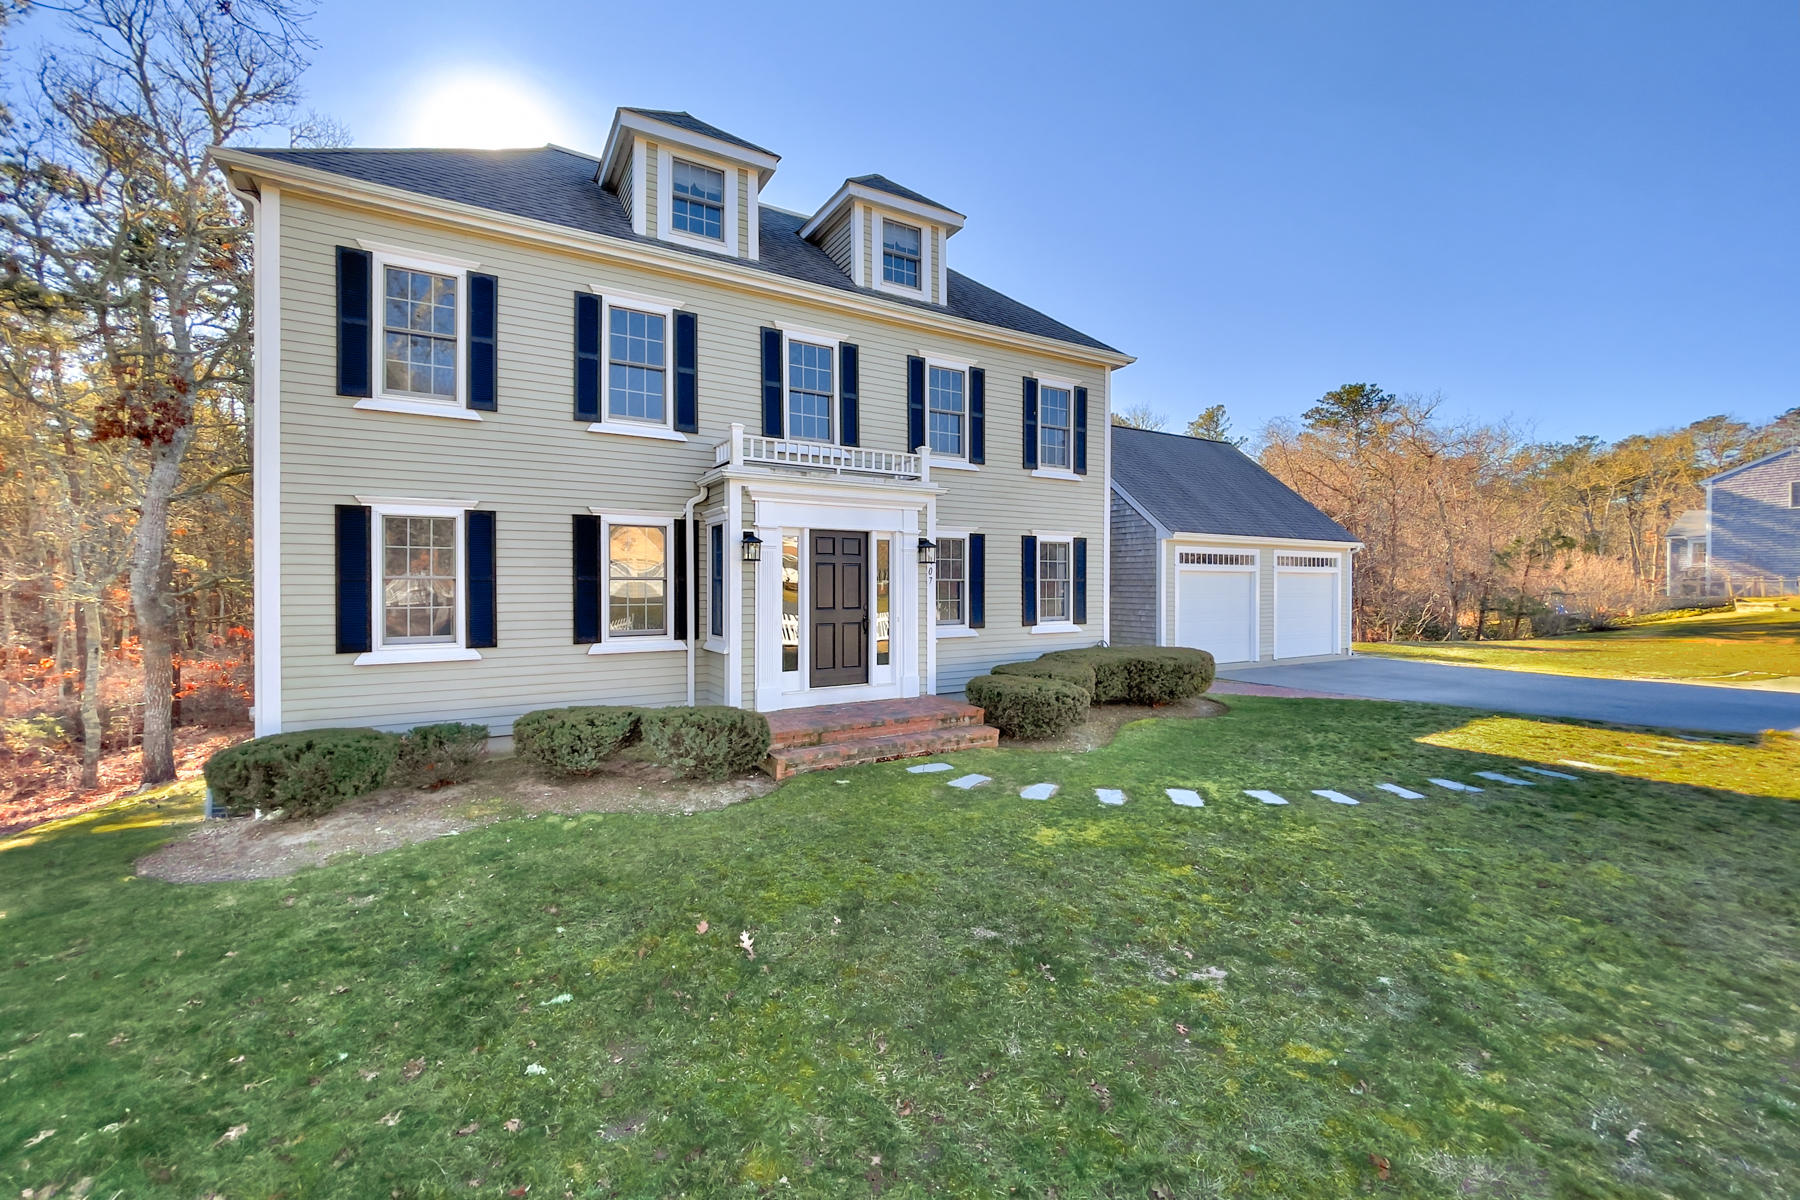 107 Courtney Road, Harwich MA, 02645 details